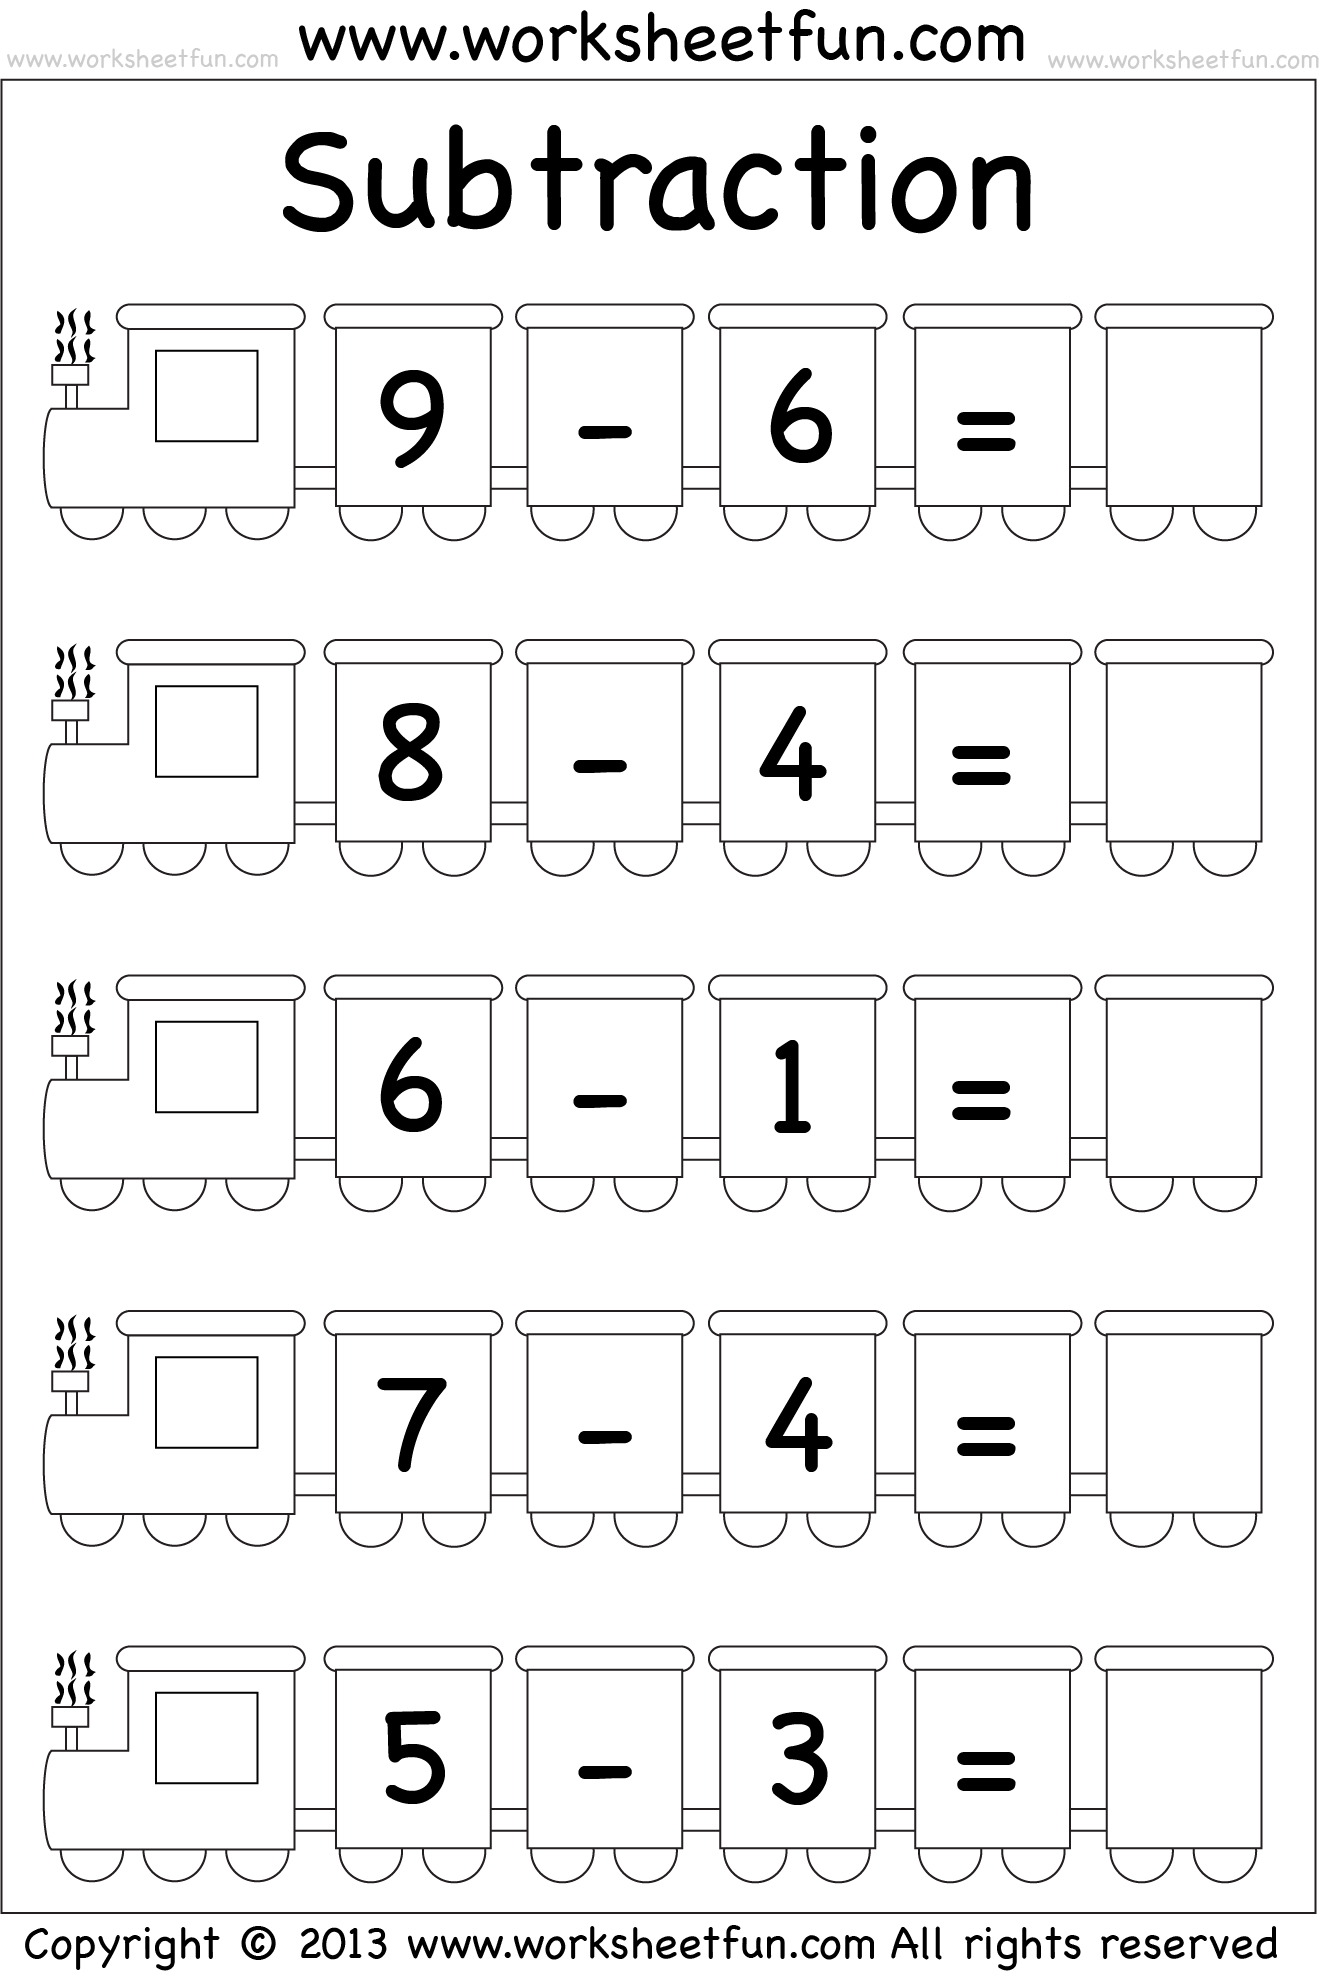 Worksheet 604780 Subtraction Worksheets for Kindergarten Free – Subtraction Worksheets Kindergarten